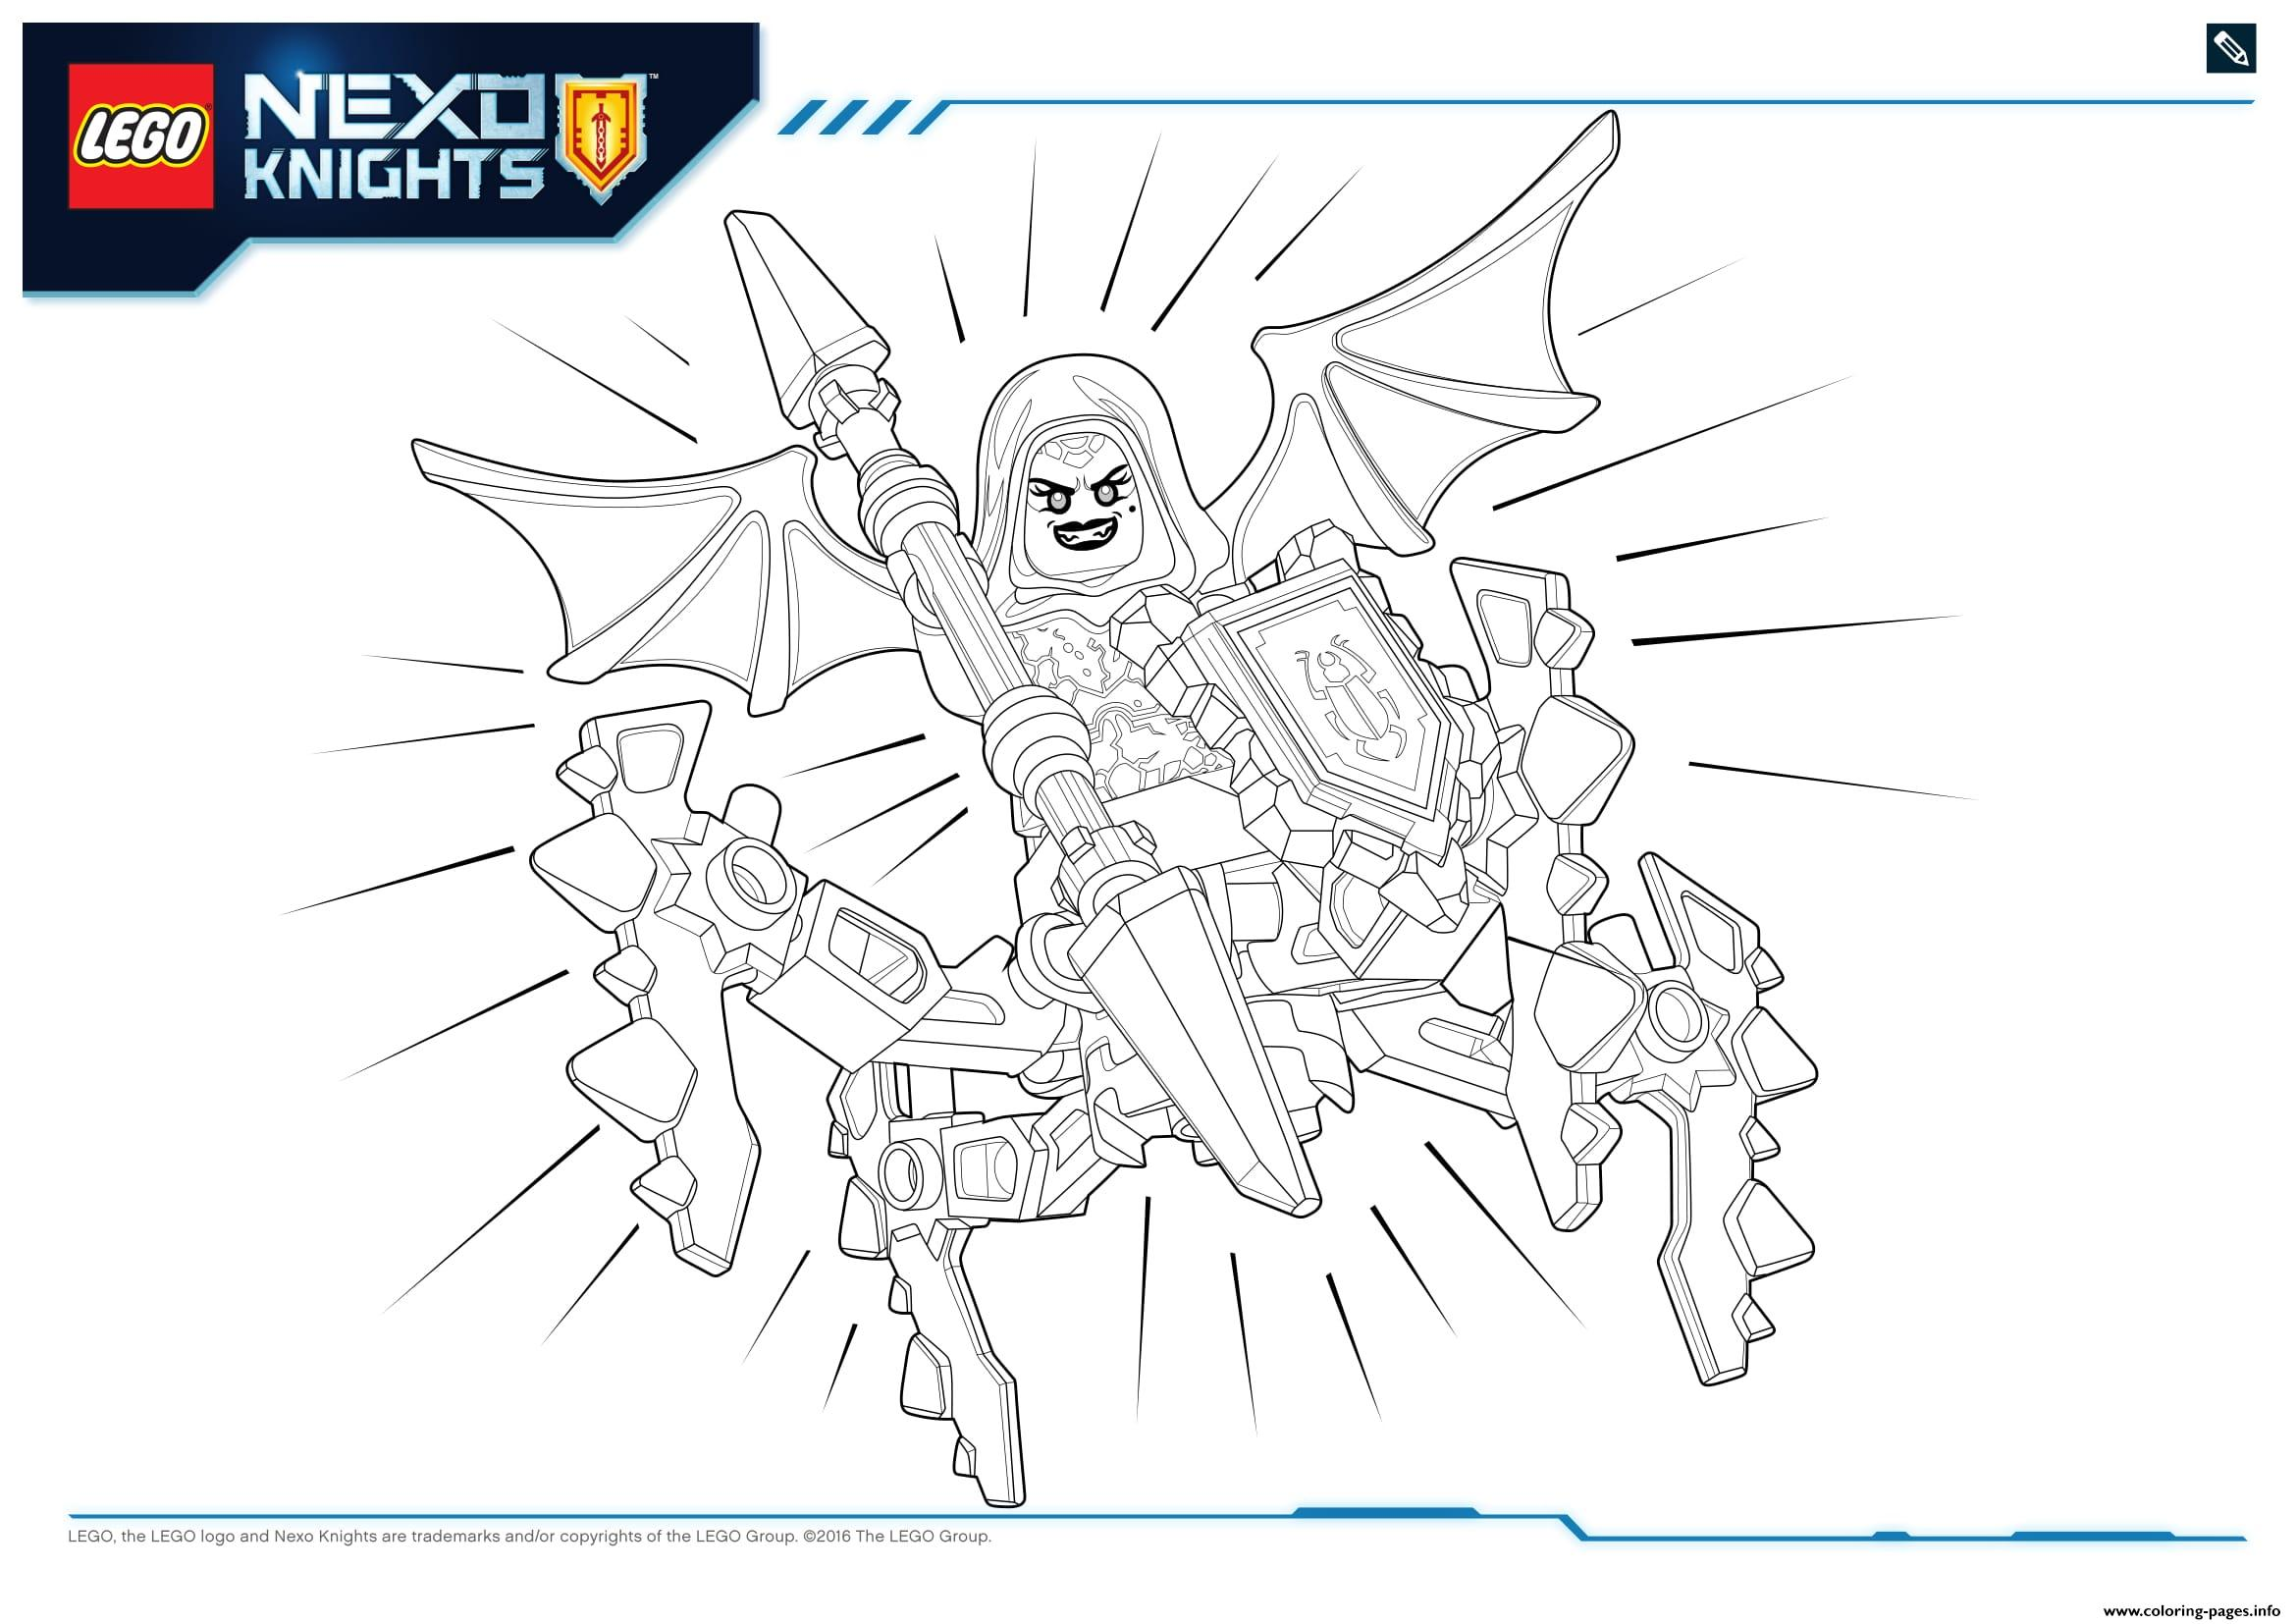 Coloring pages nexo knights - Coloring Pages Nexo Knights 50